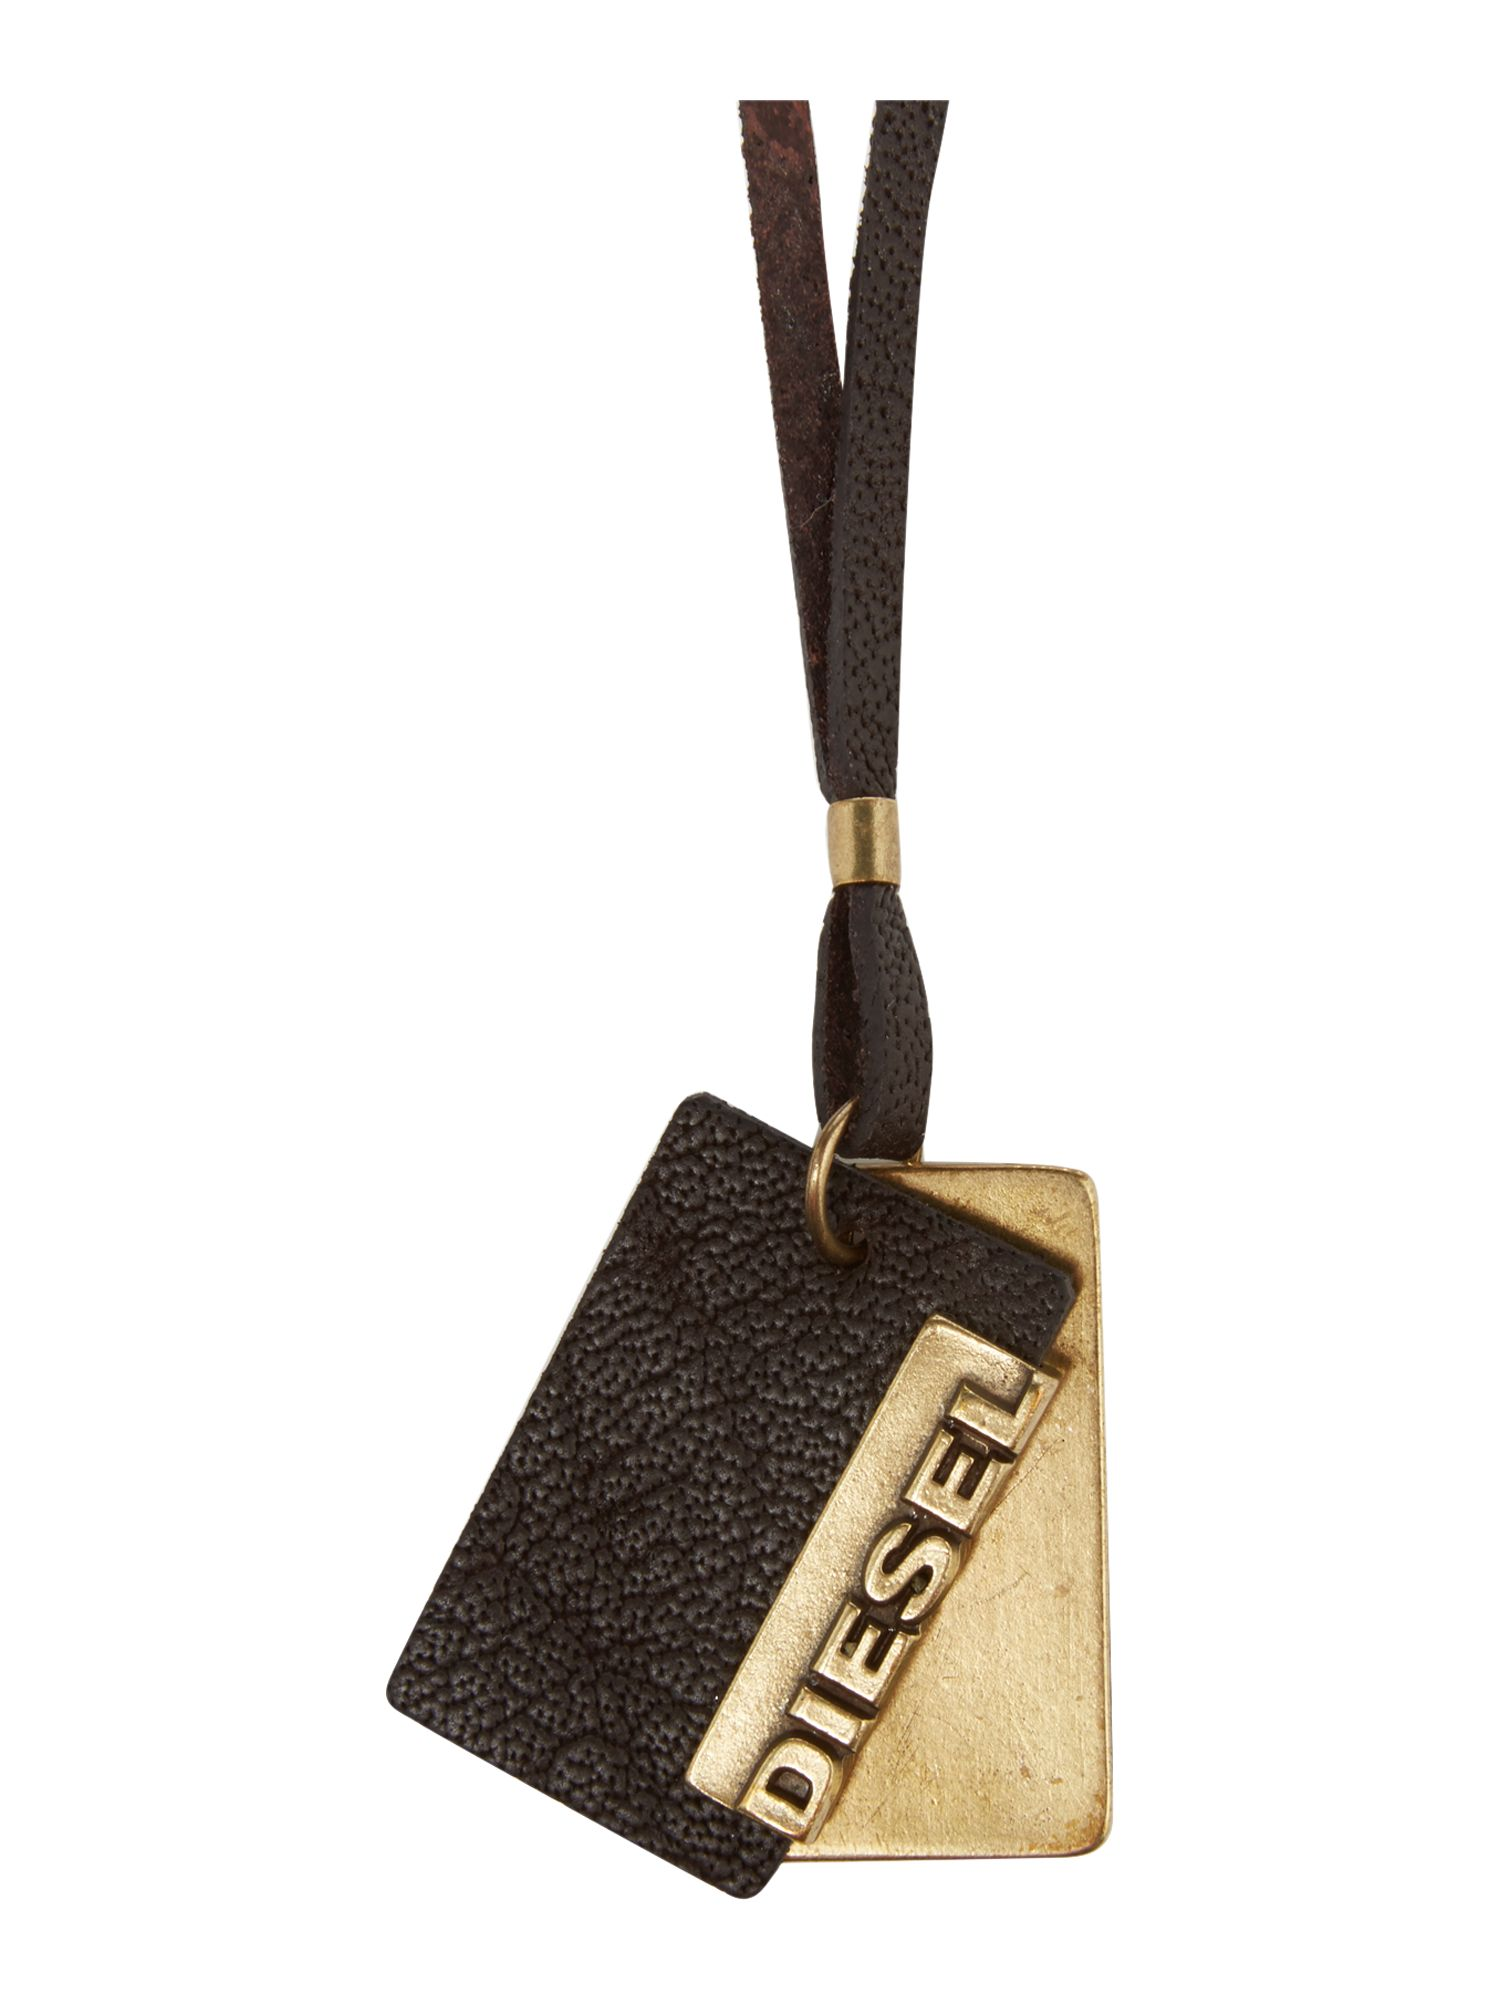 Leather and metal key fob